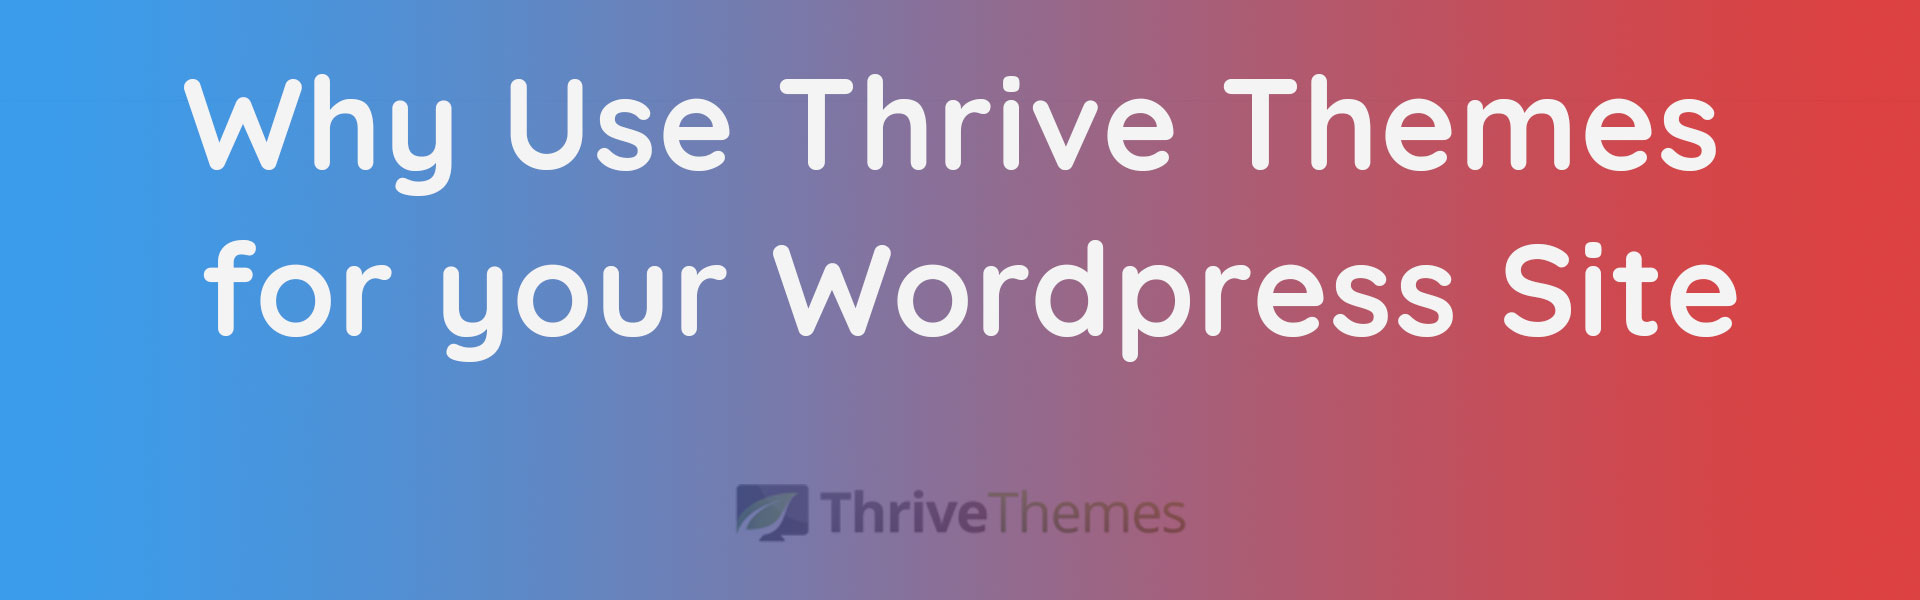 Buy Thrive Themes WordPress Themes Price On Ebay